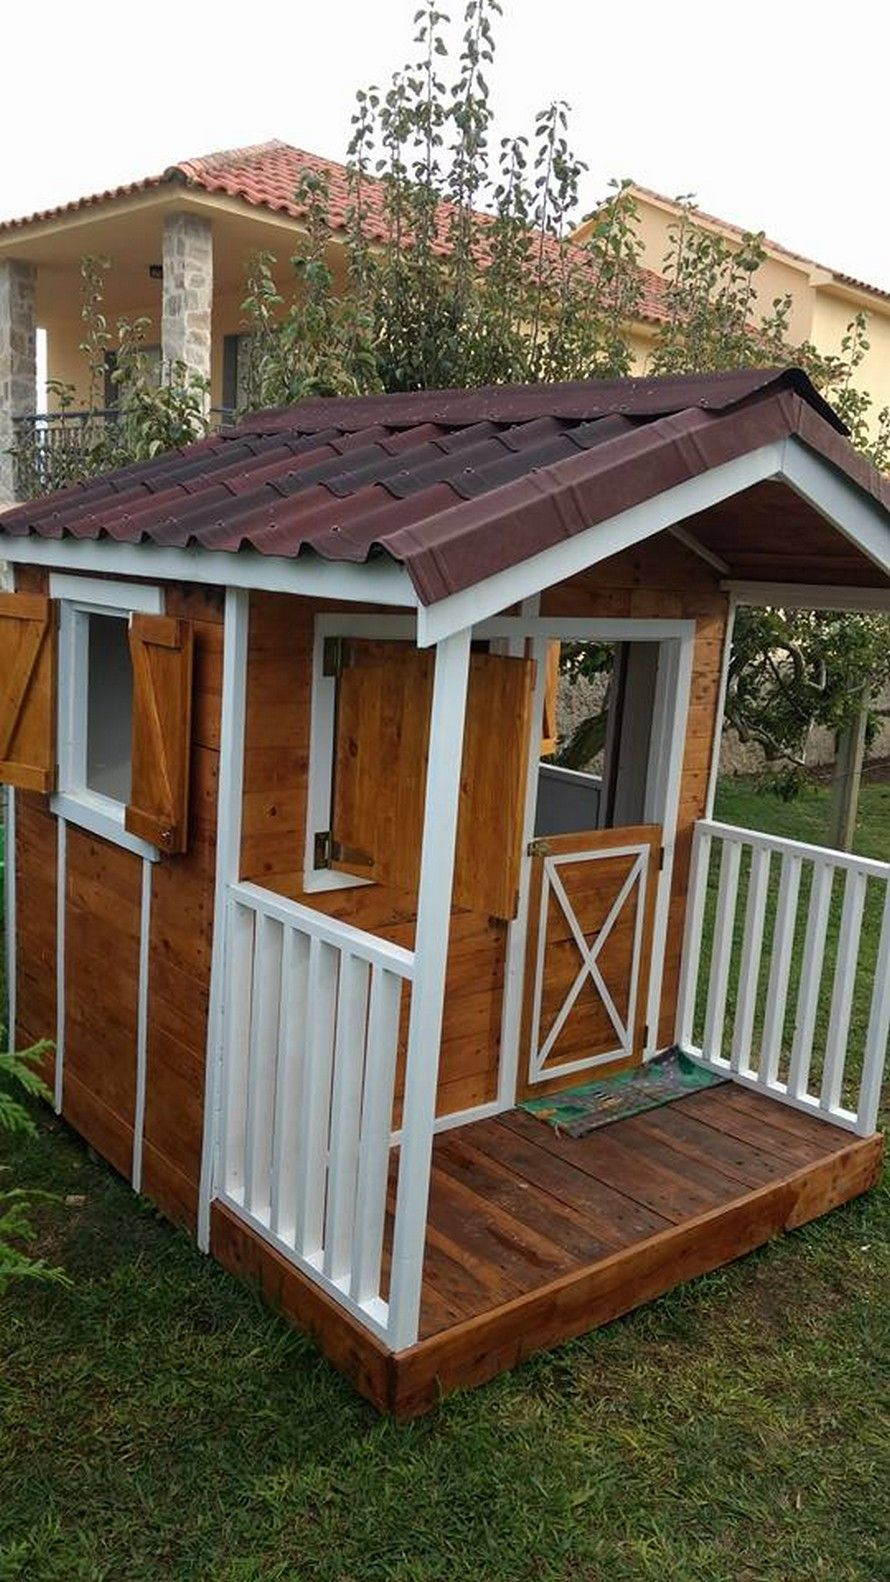 Recycled Pallet Garden Cottage Sheds Workshops With